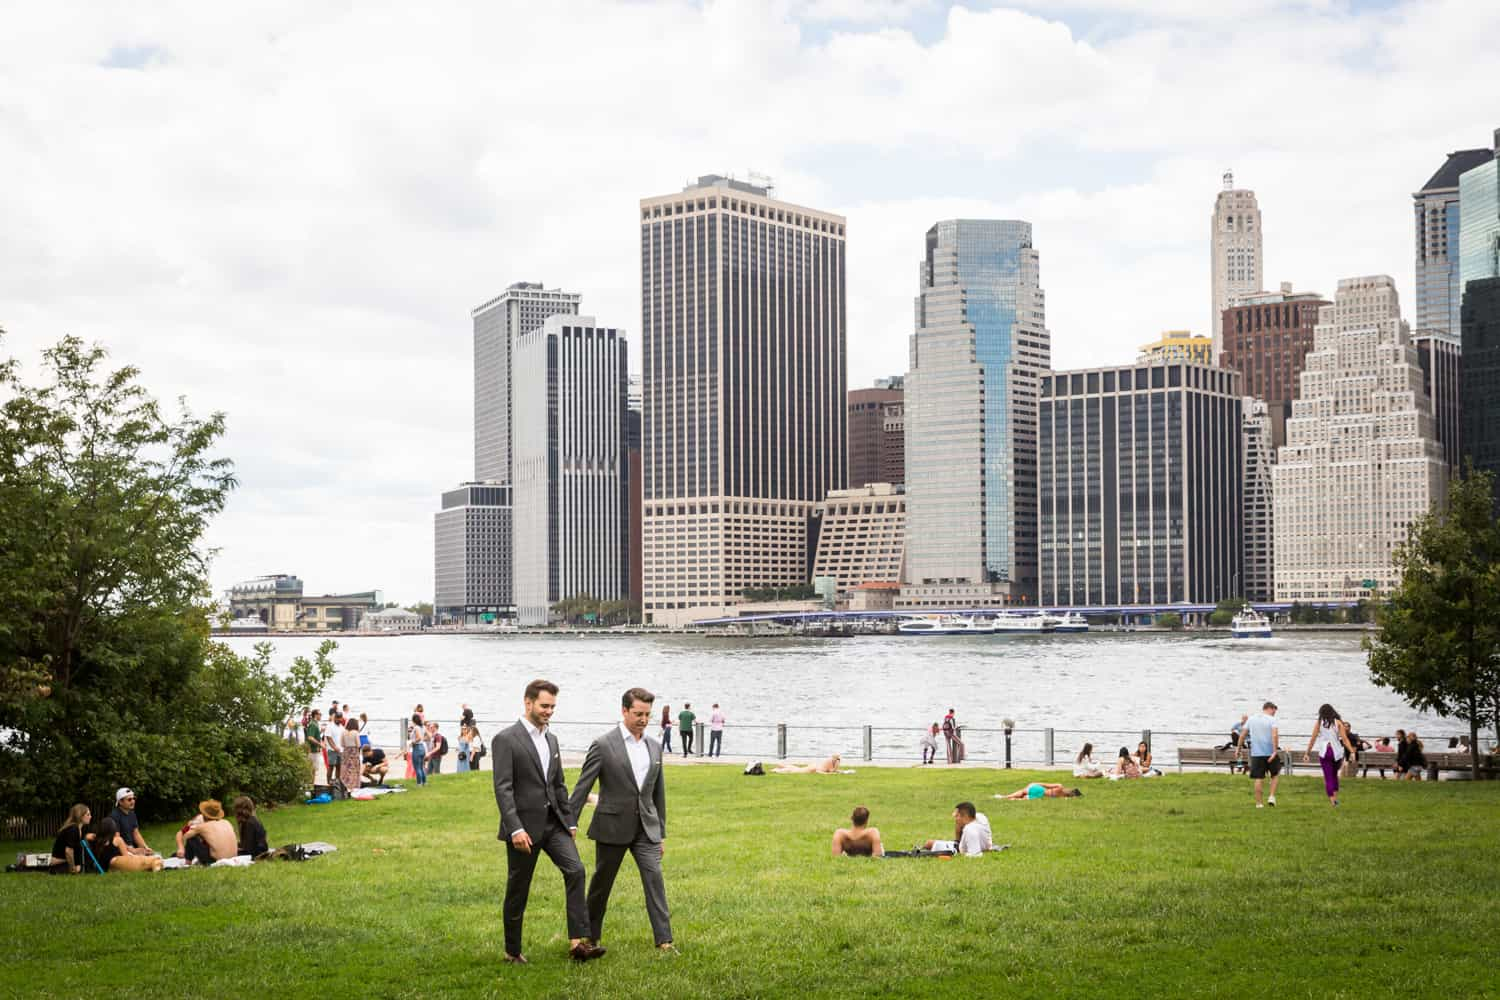 Greenpoint Loft wedding photos of two grooms walking across grass with NYC skyline in background